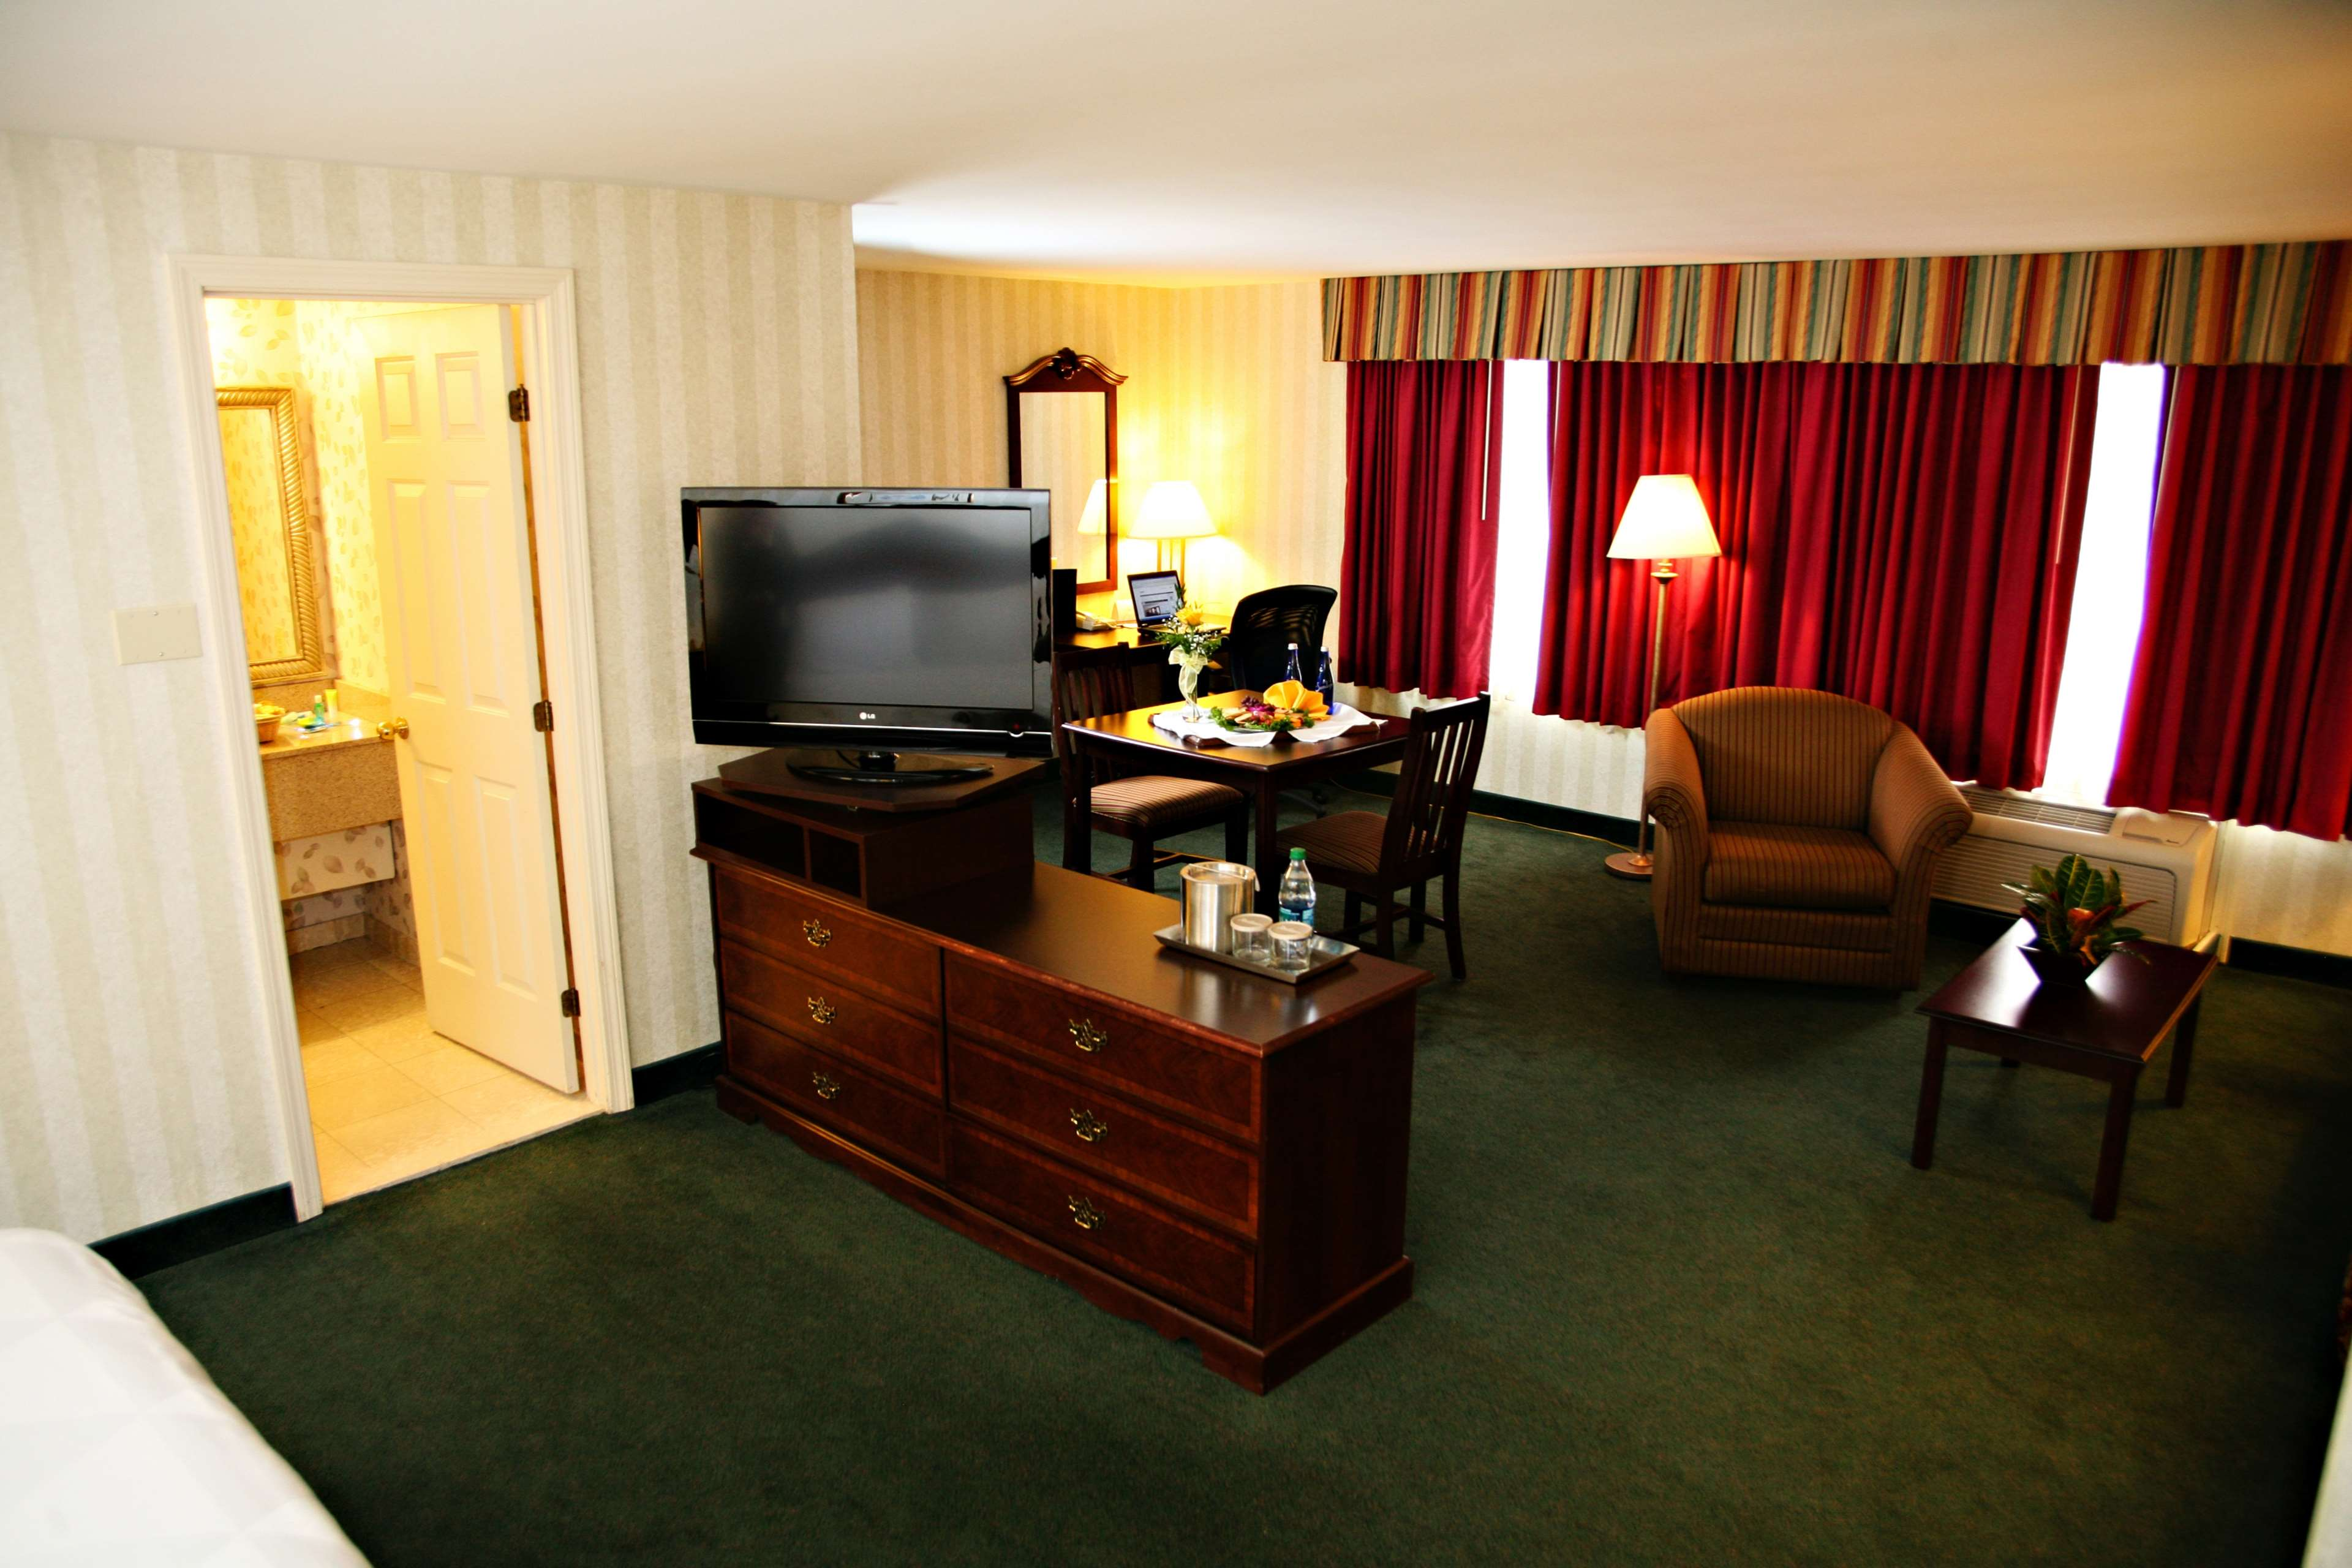 Radisson Hotel & Suites Chelmsford-Lowell - Closed in Chelmsford, MA, photo #12